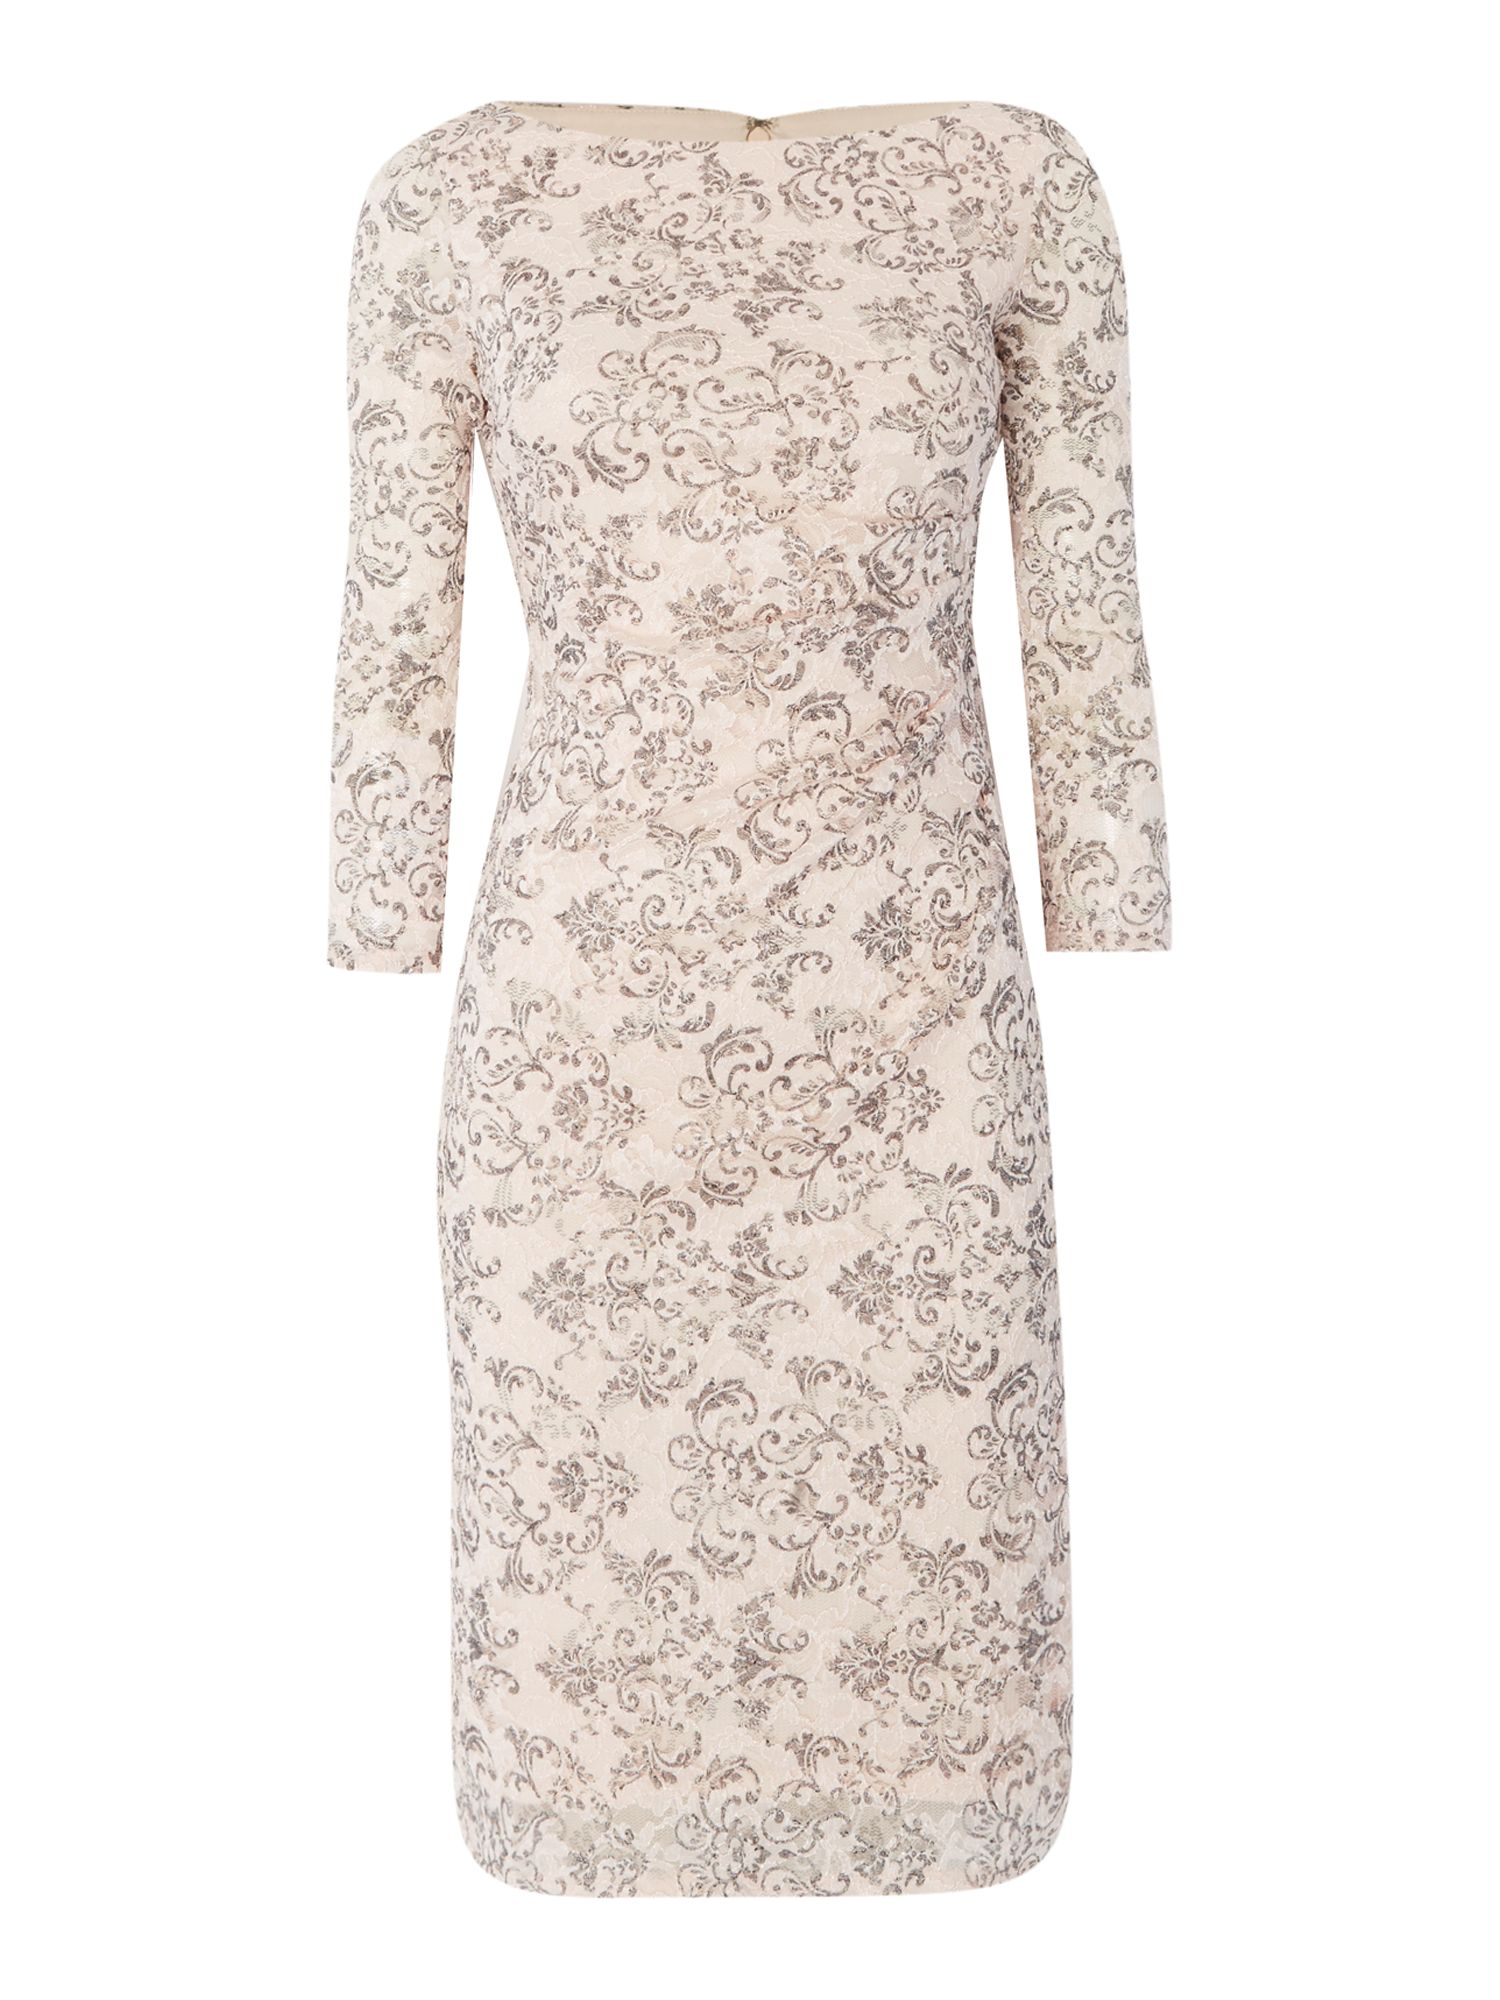 Eliza J 3/4 sleeve lace floral wrap dress, Pink